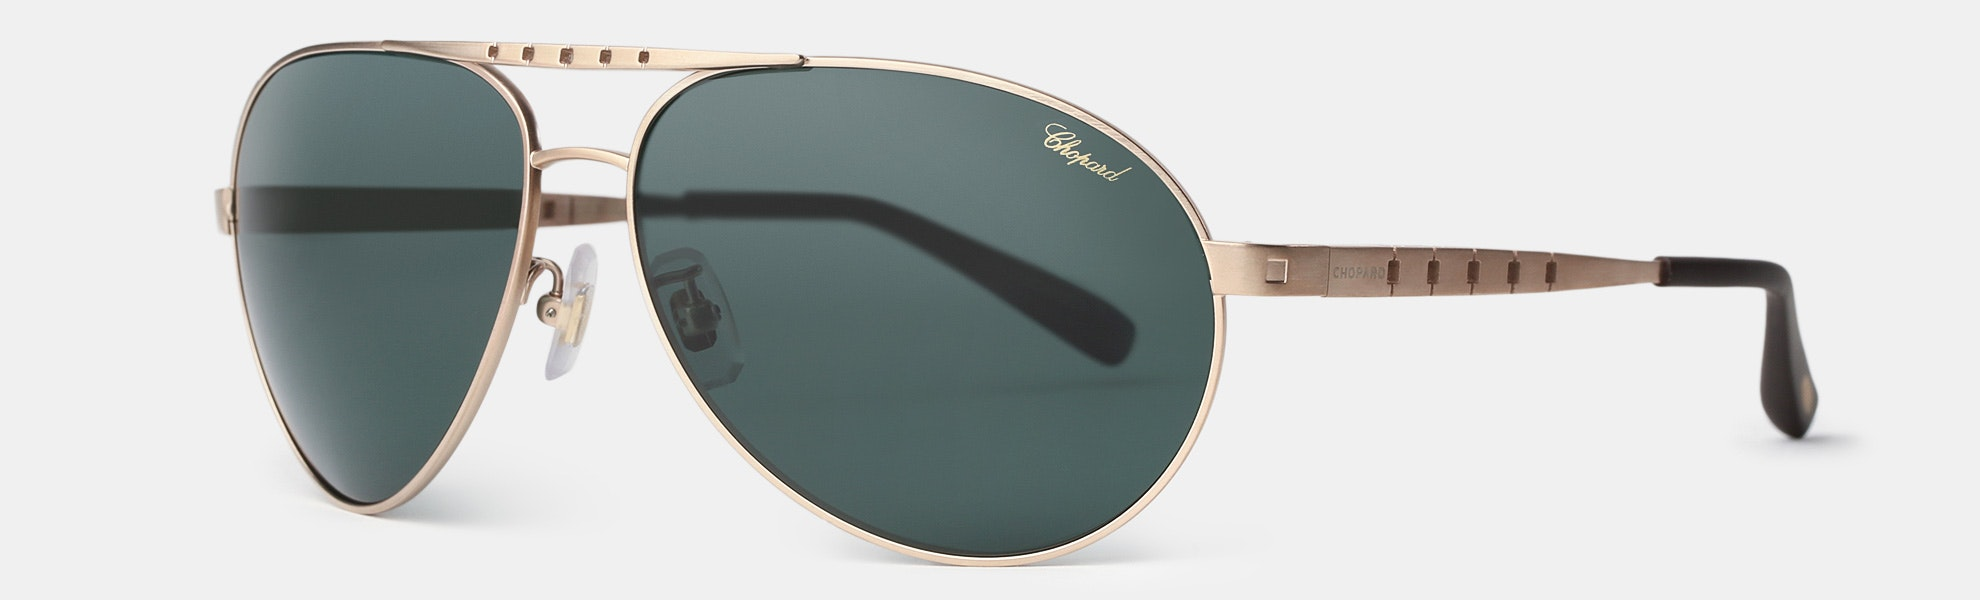 Chopard SCHB01 Polarized Aviator Sunglasses